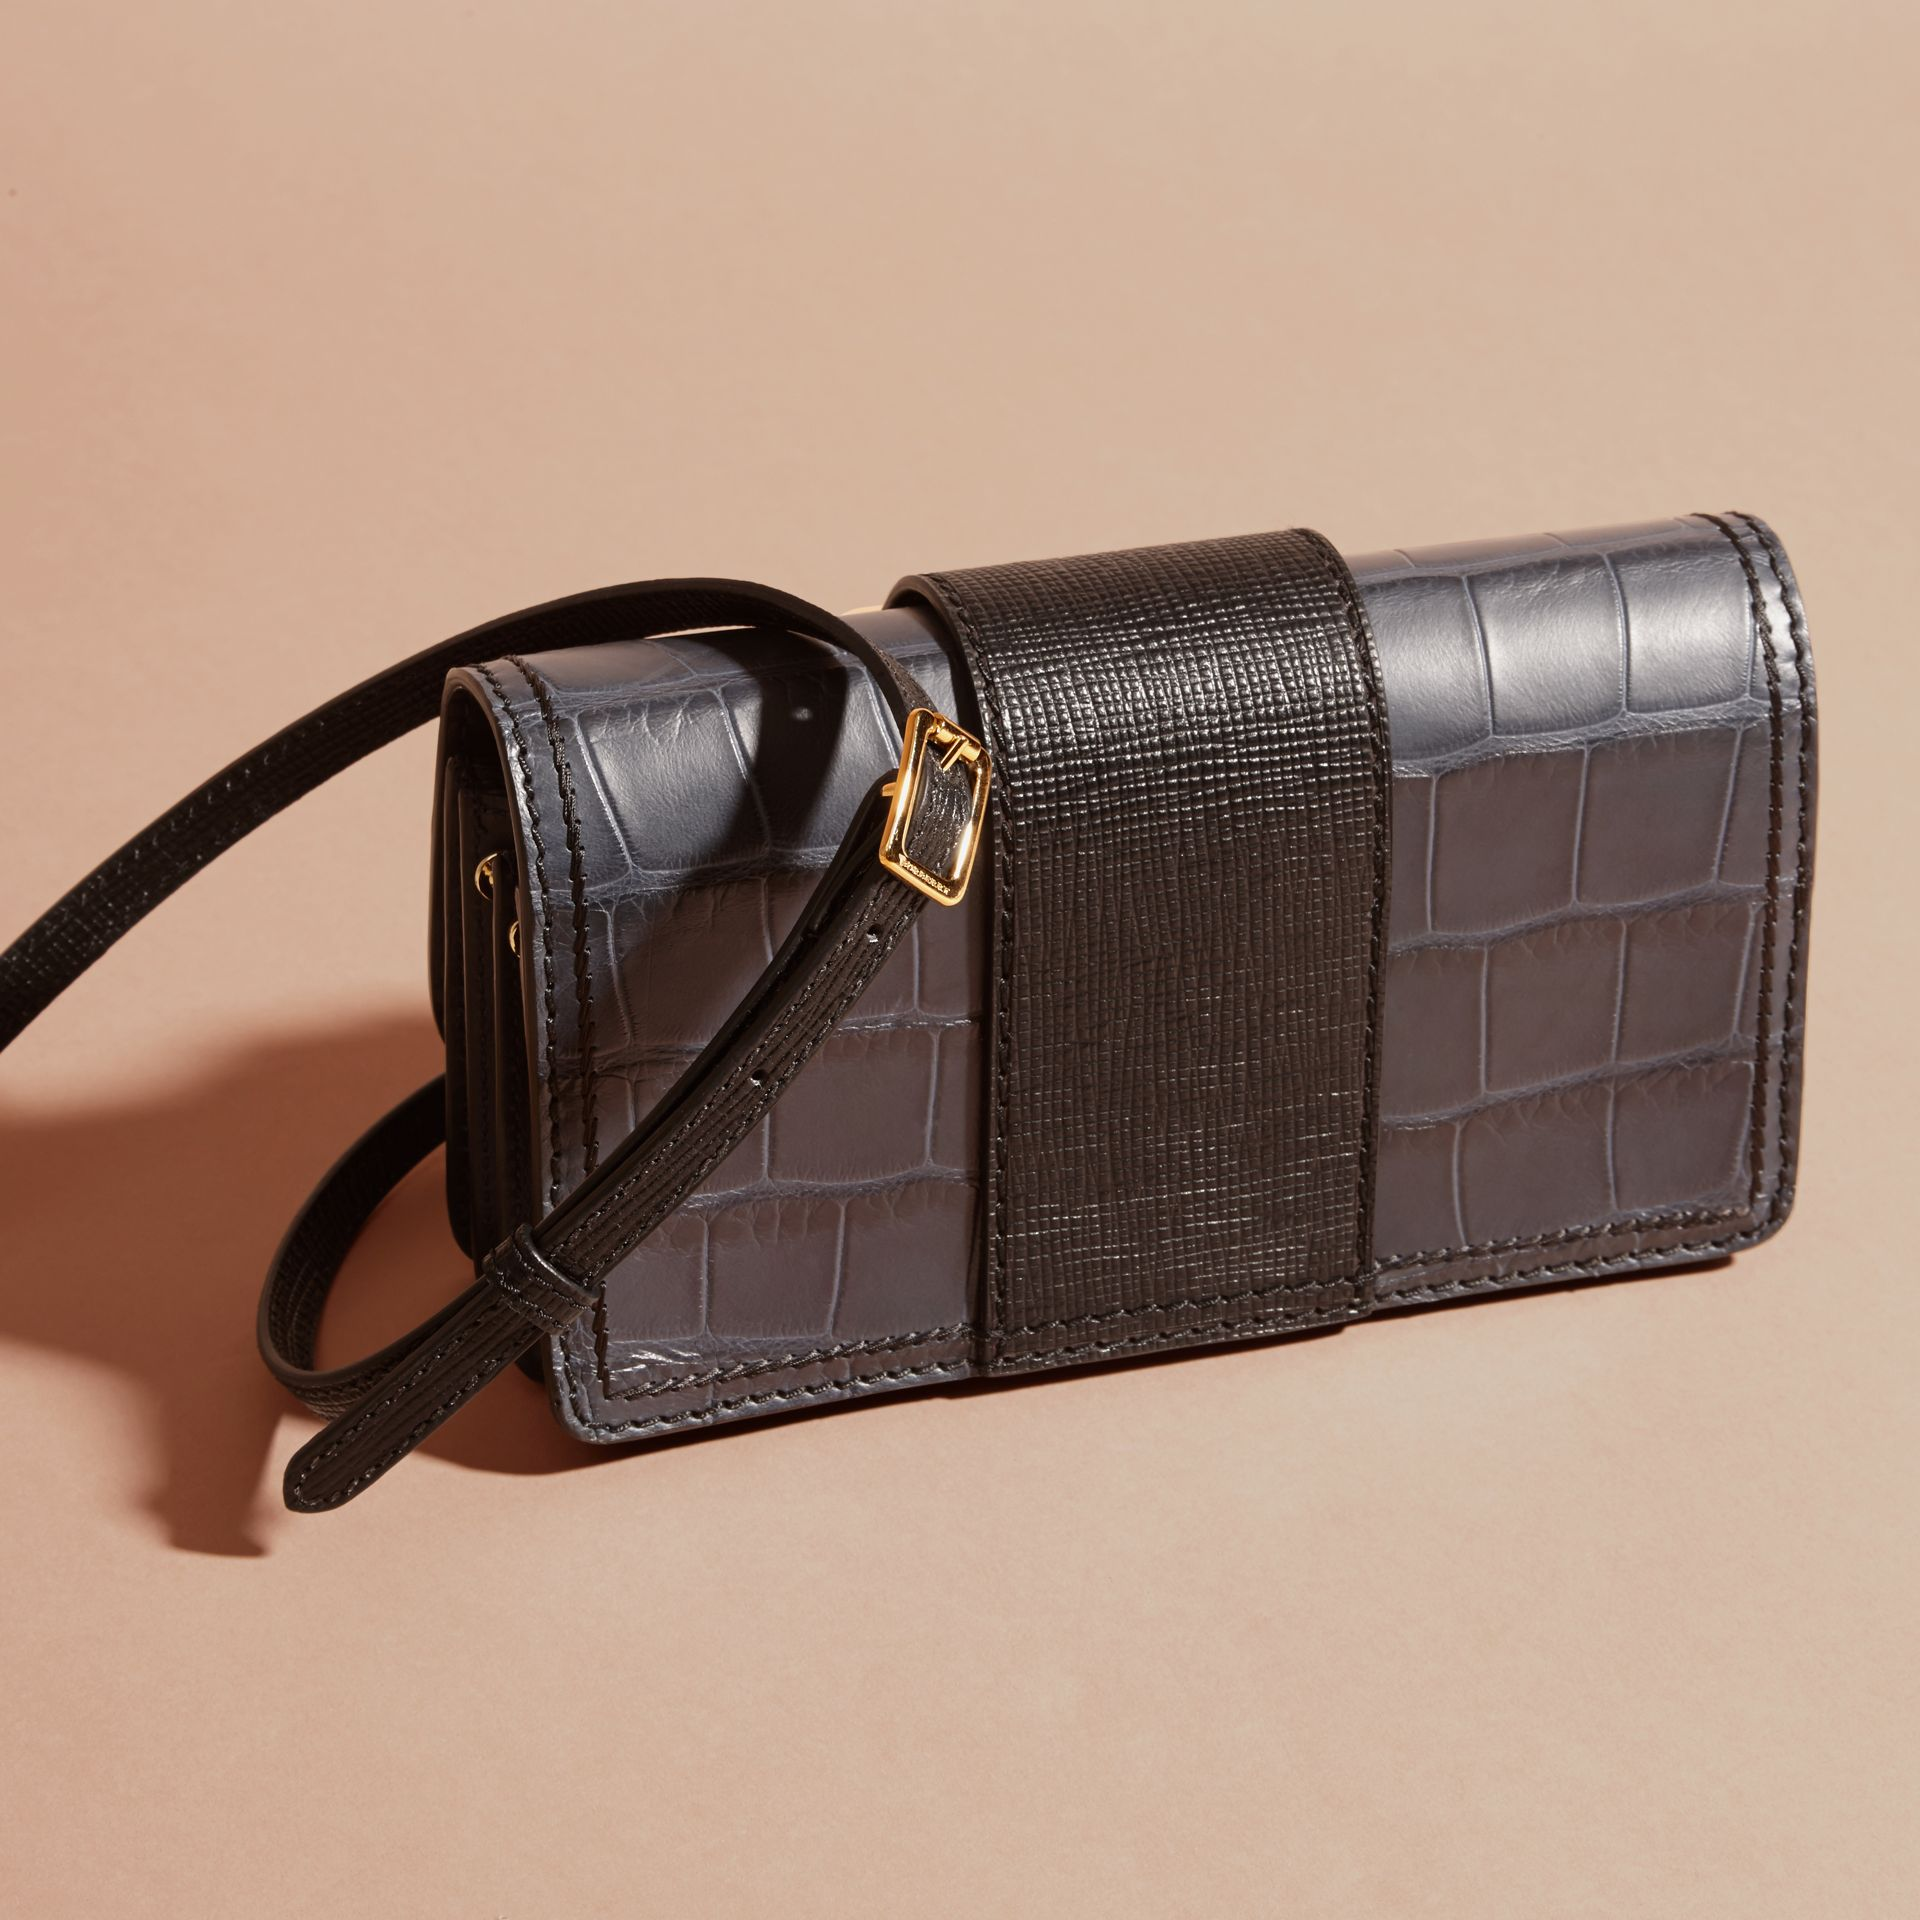 The Small Buckle Bag in Alligator and Leather in Navy / Black - Women | Burberry Canada - gallery image 5